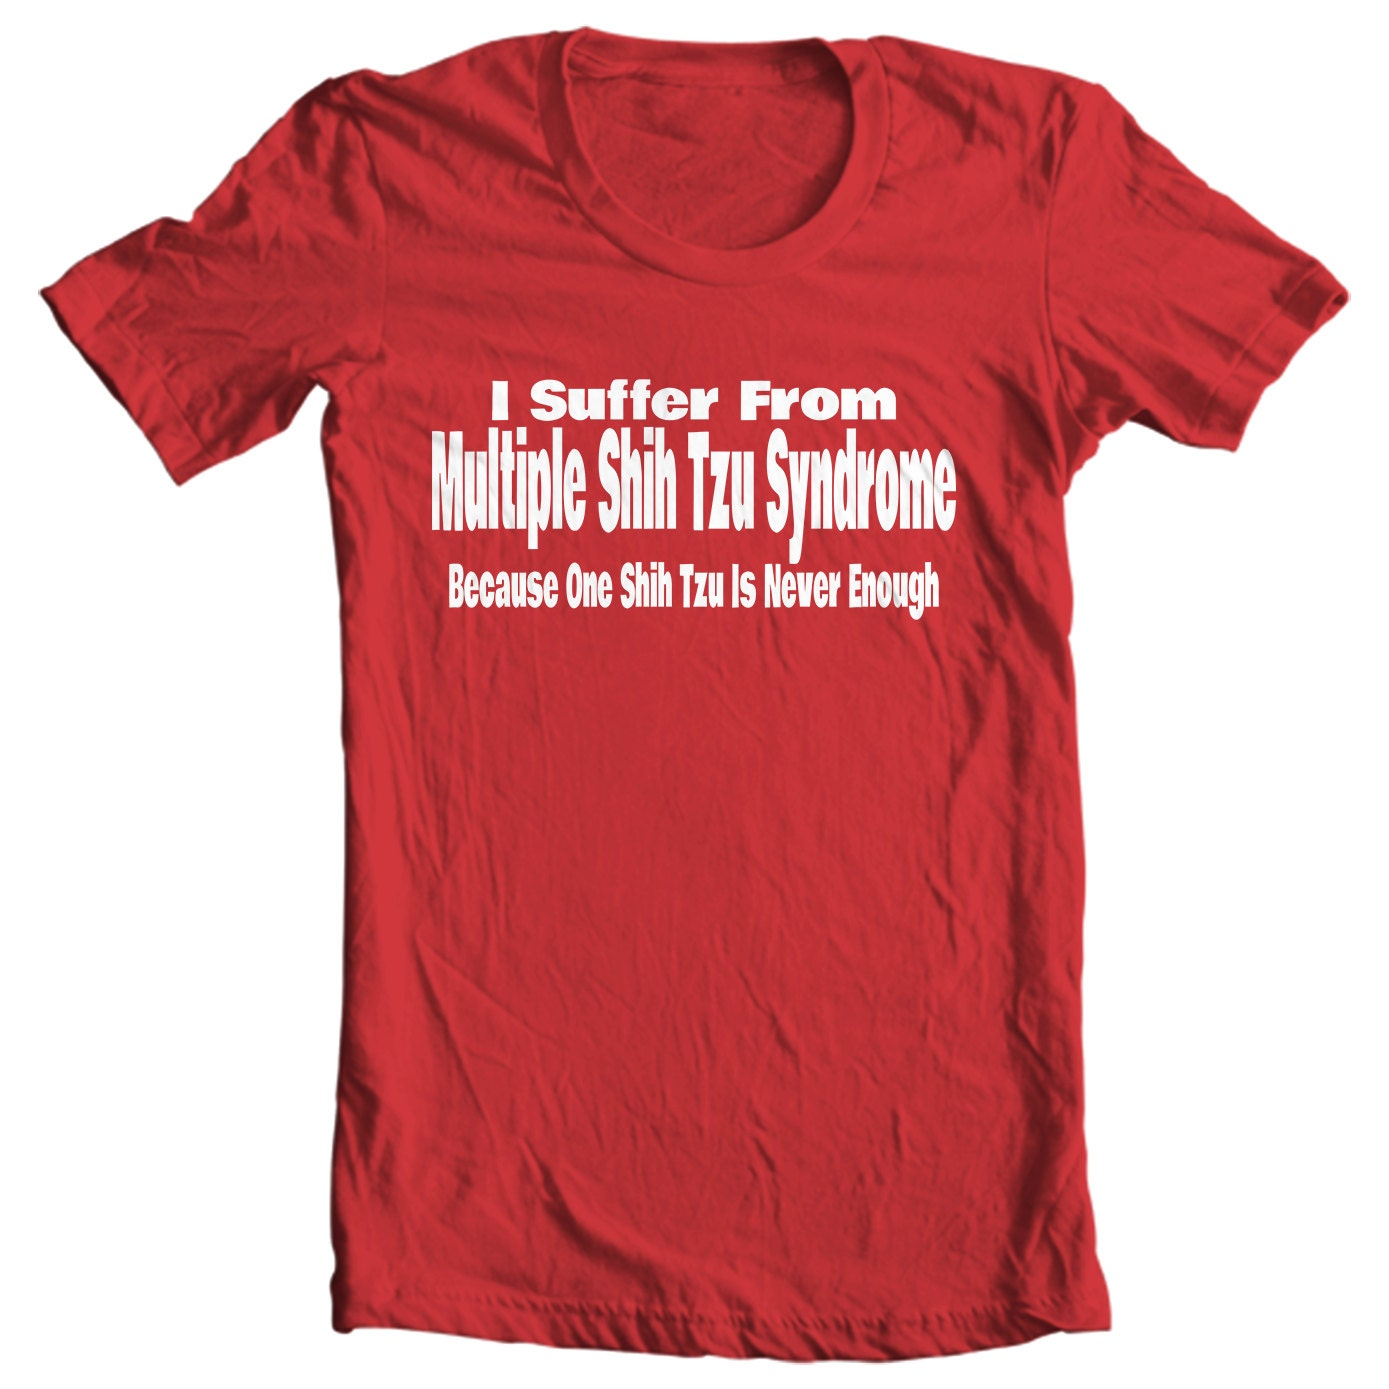 I Suffer From Multiple Shih Tzu Syndrome T-shirt - Only Shih Tzus